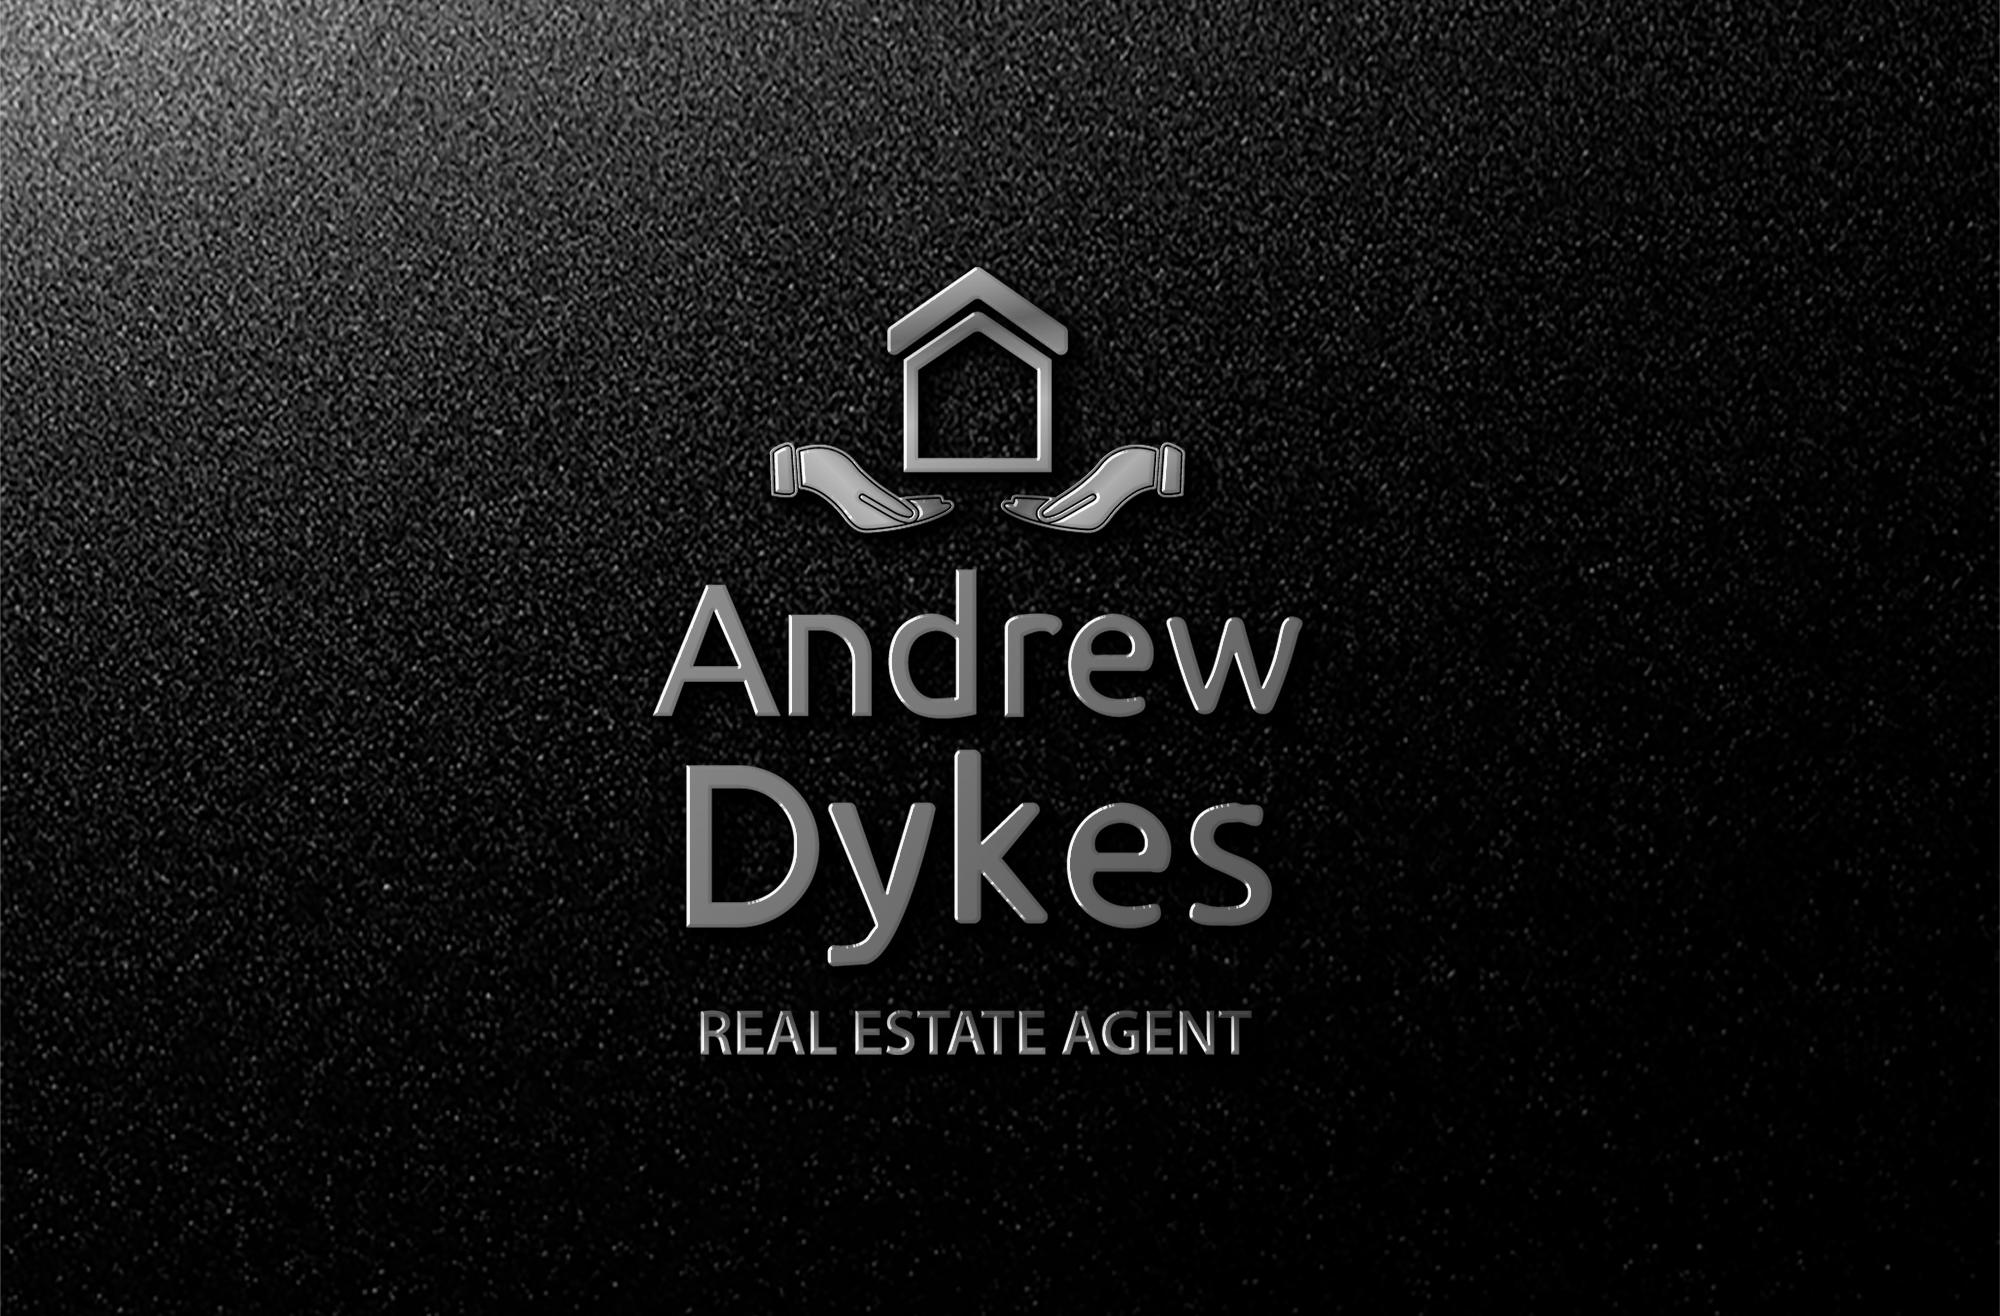 Andrew Dykes Real Estate Agent